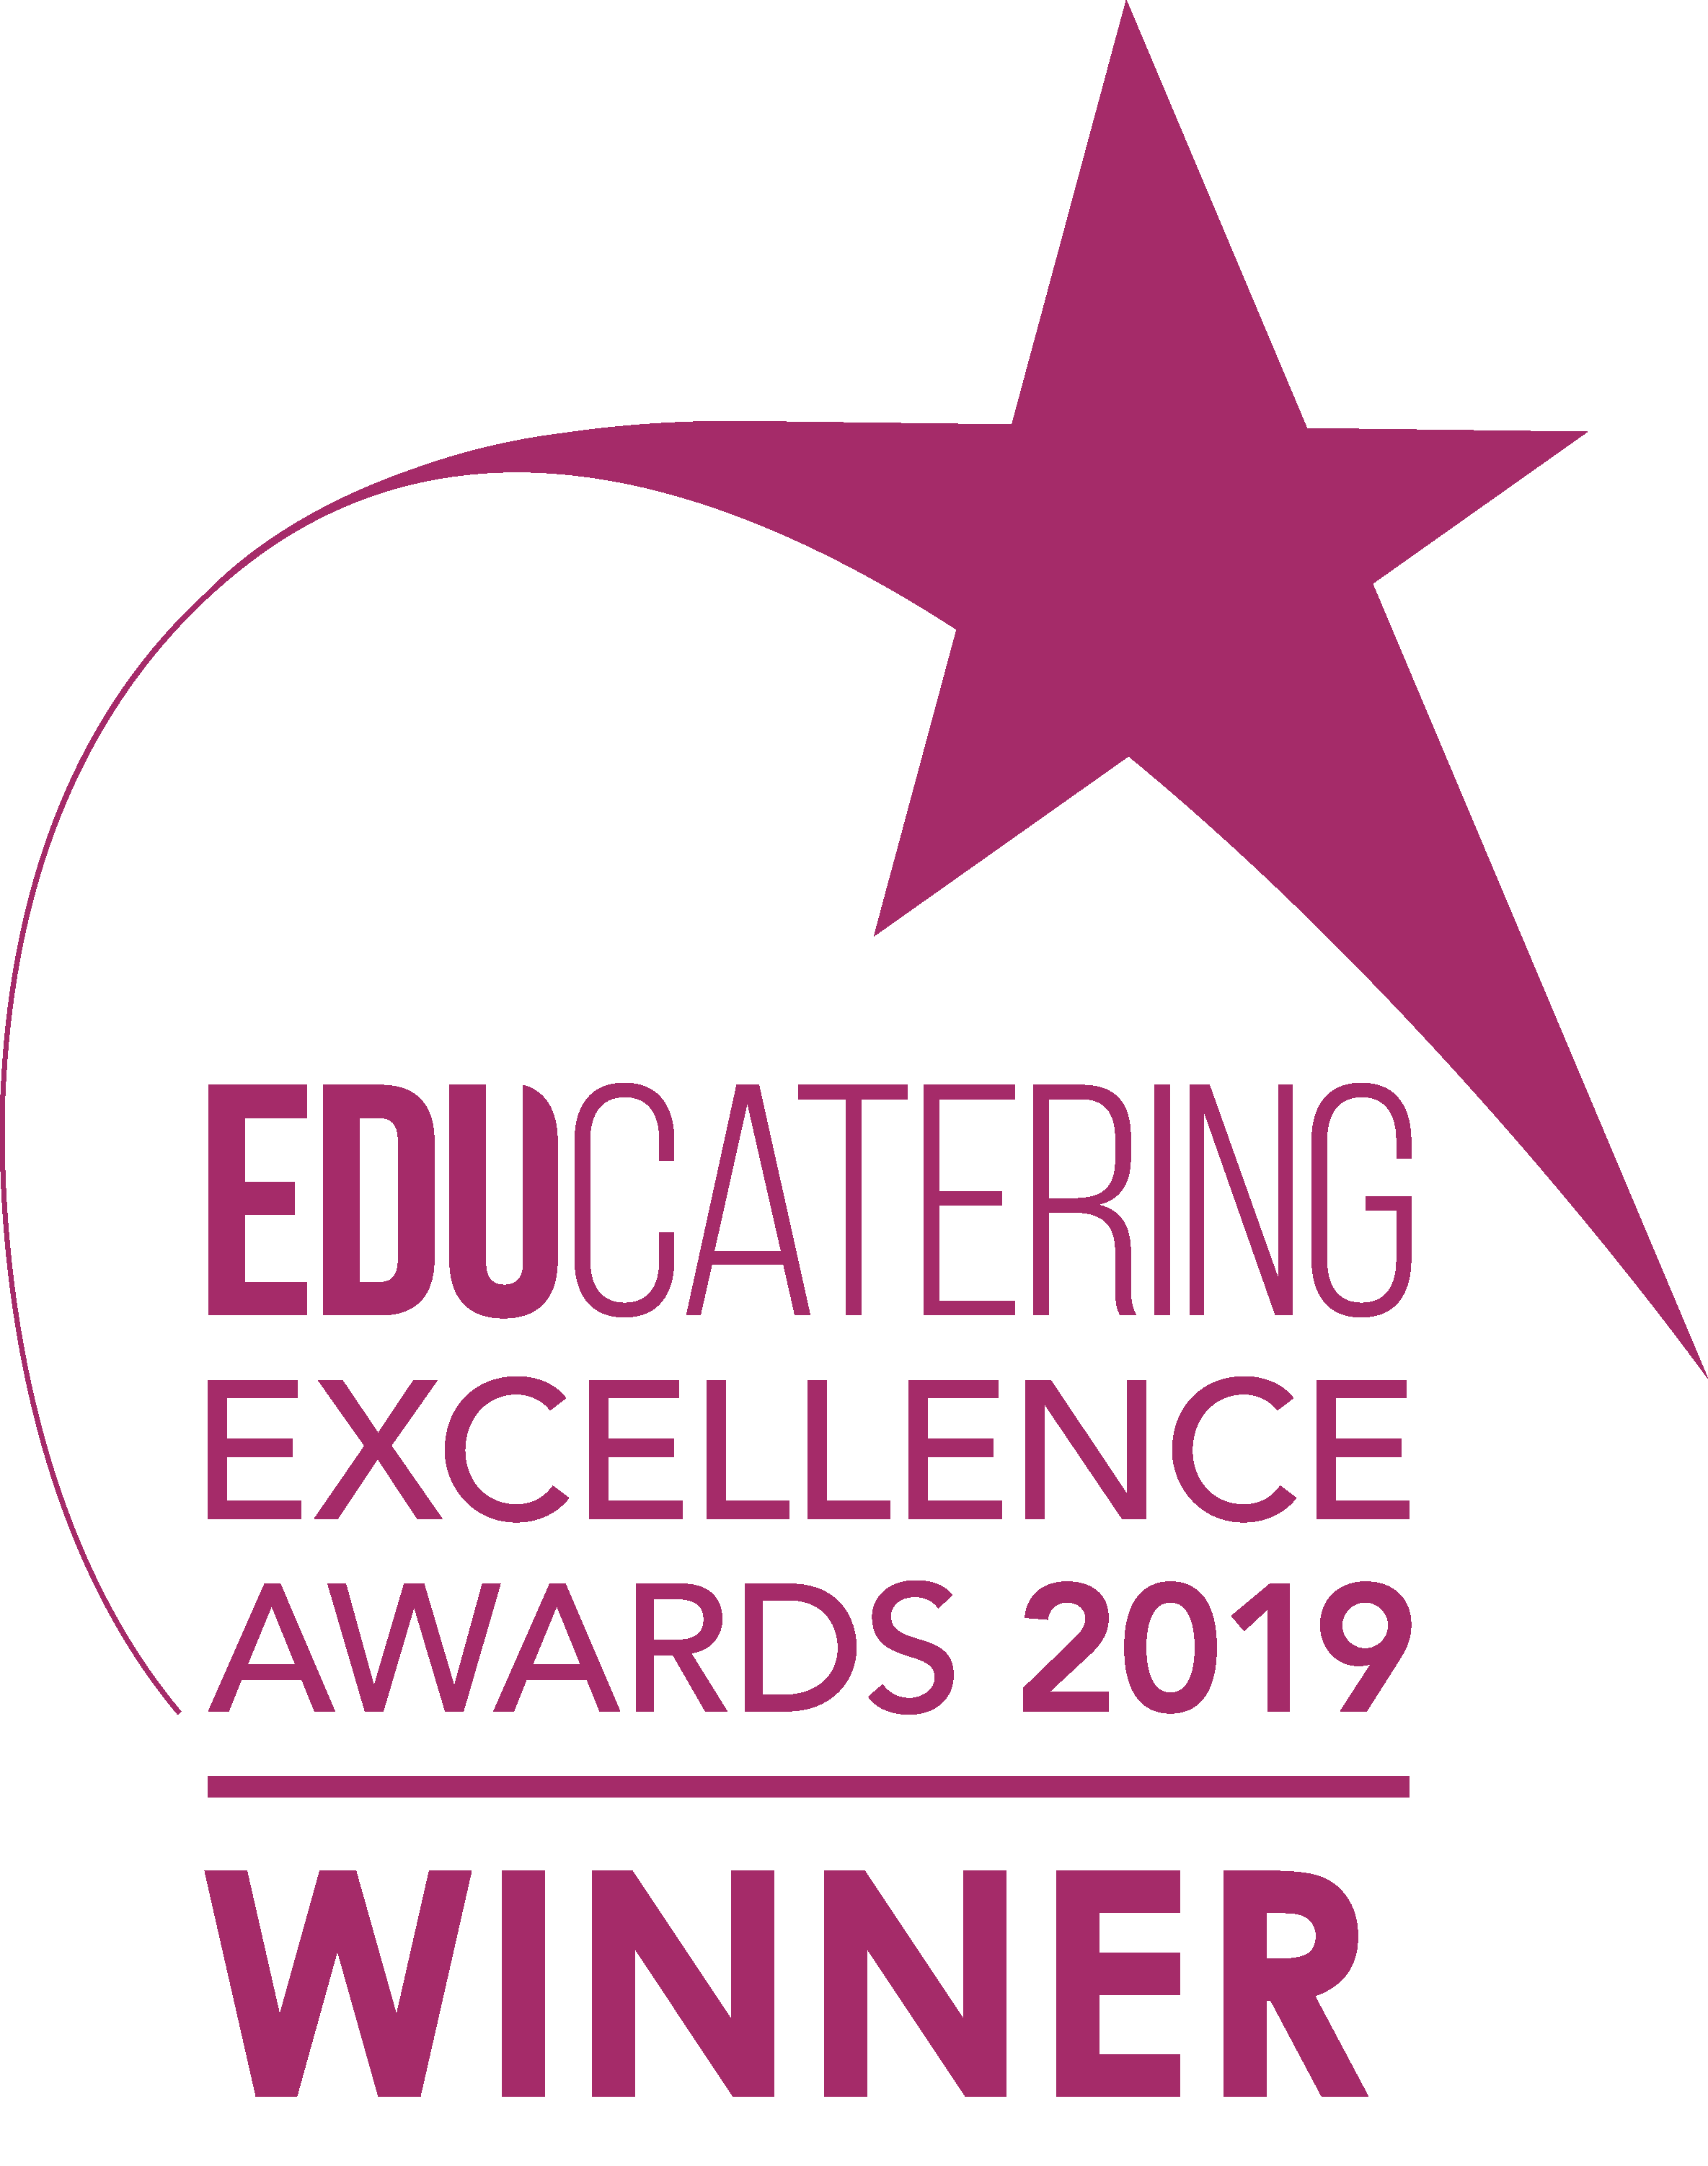 Educatering Excellence Award 2019